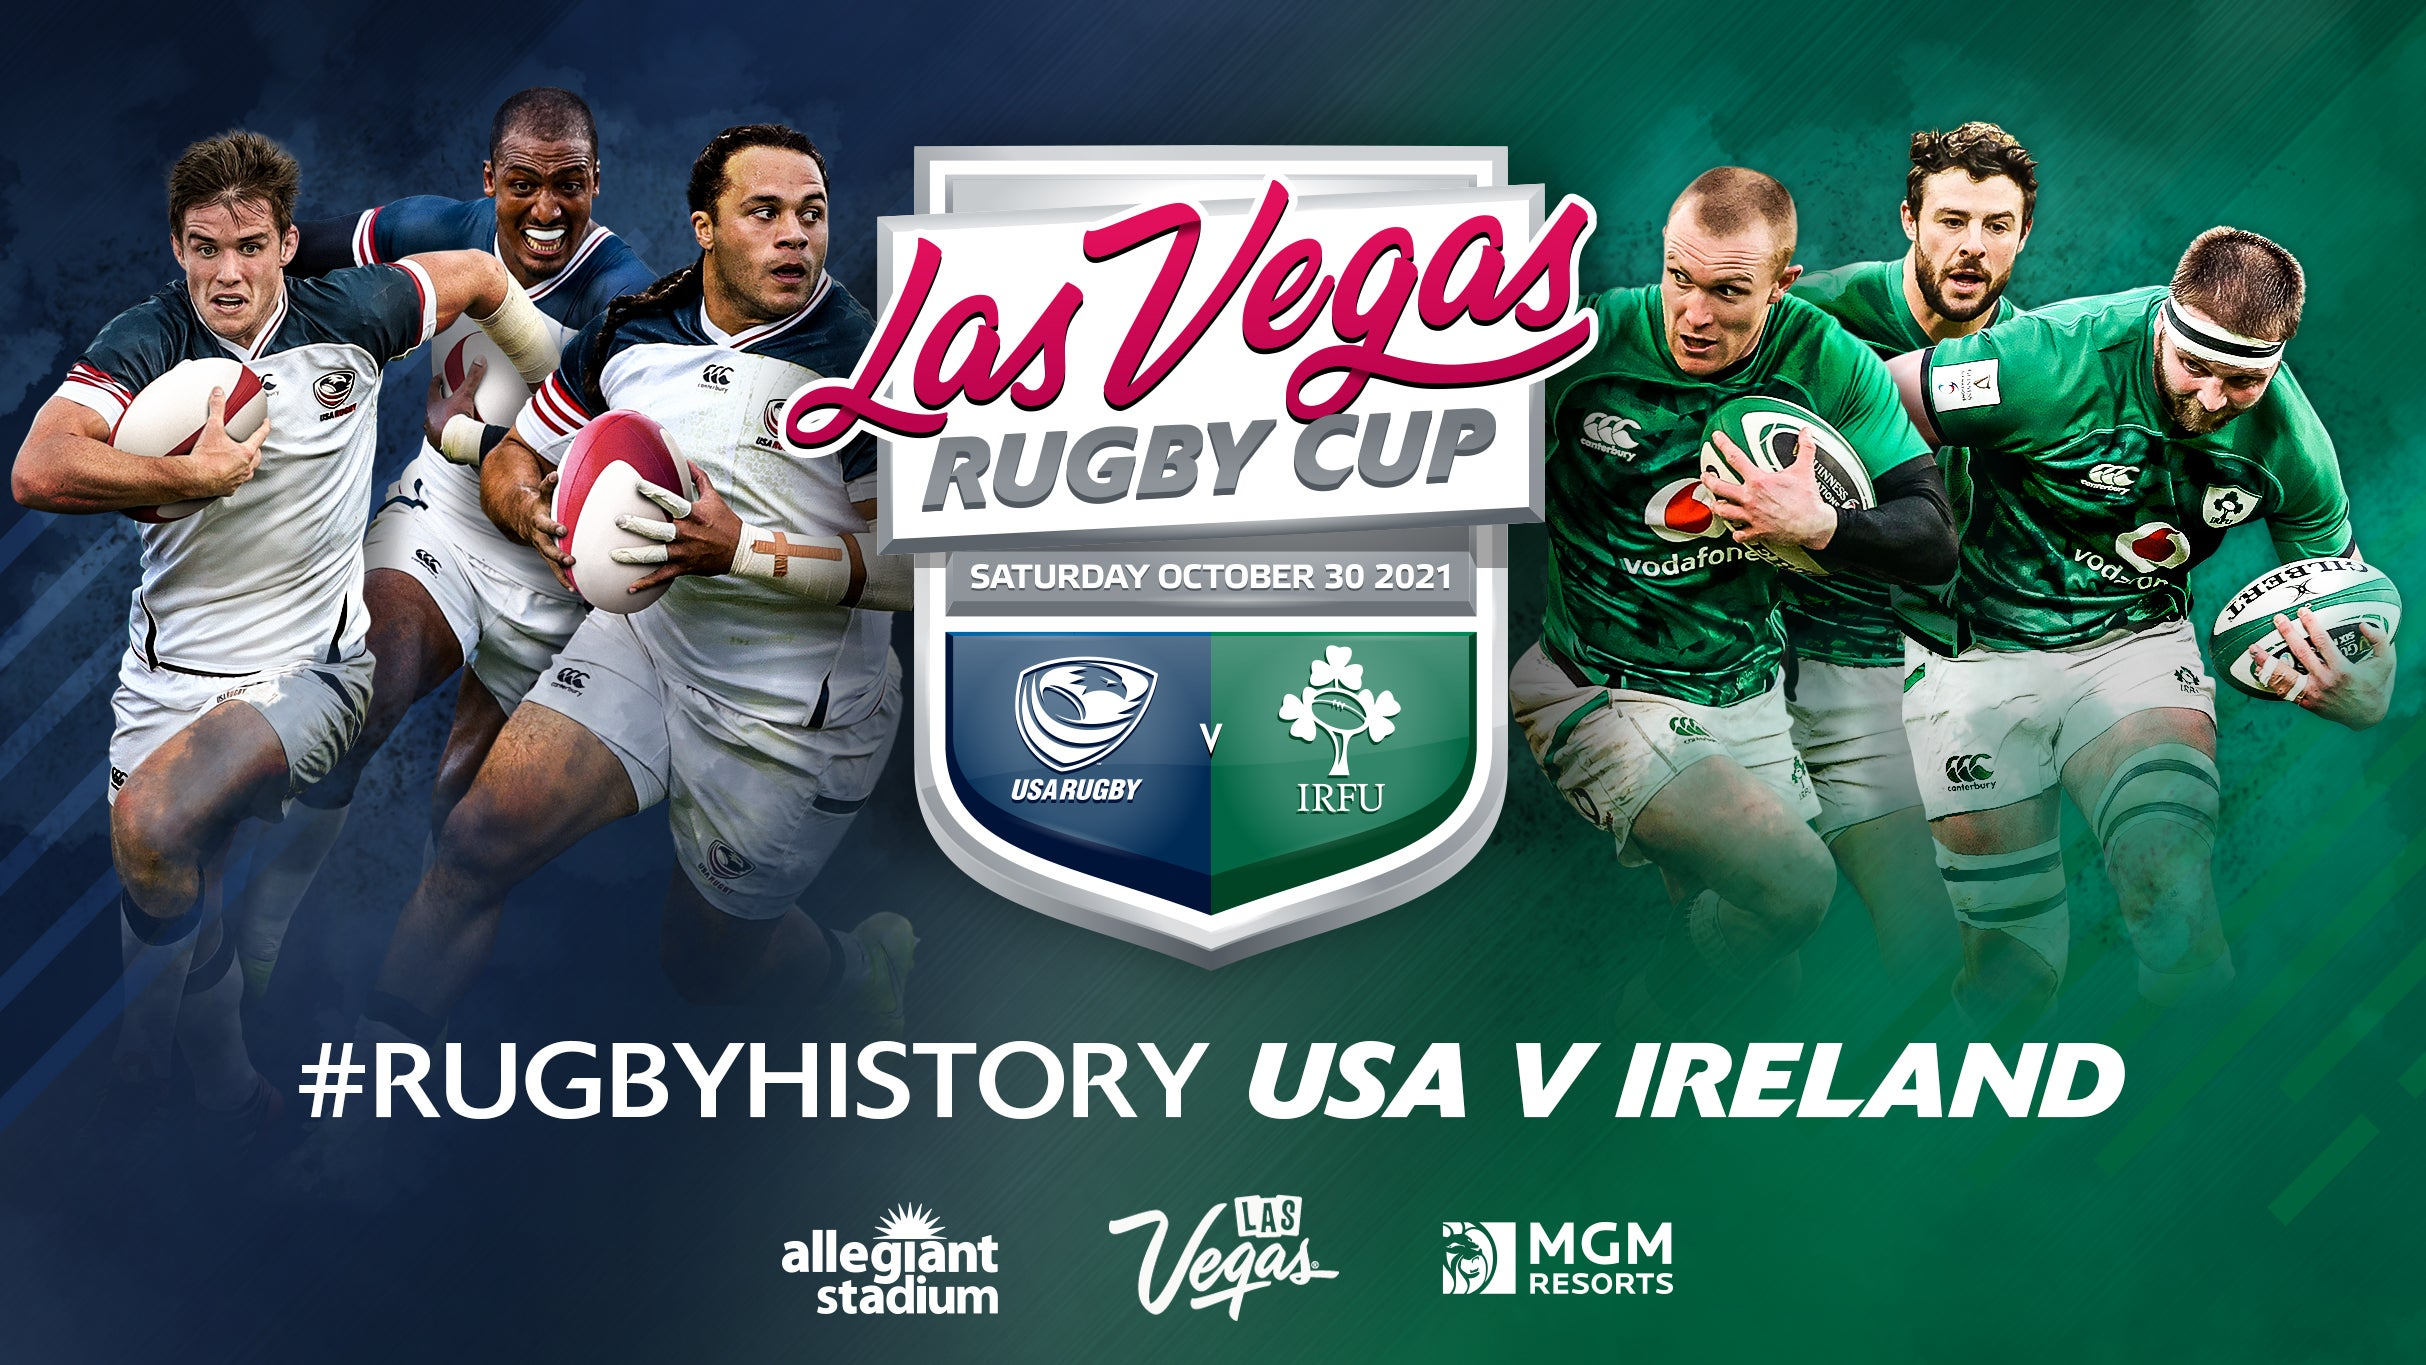 More Info for Las Vegas Rugby Cup Schedule on October 30 at Allegiant Stadium Canceled for 2021